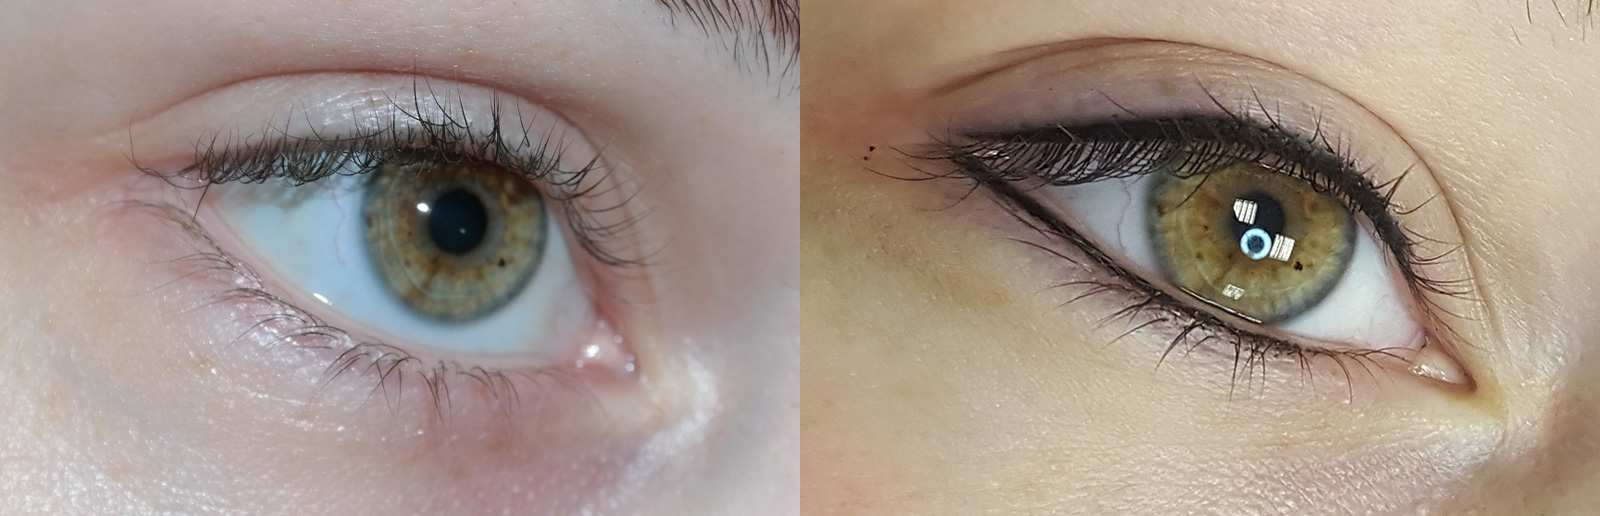 Permanent-Eyeliner-Before-After-1